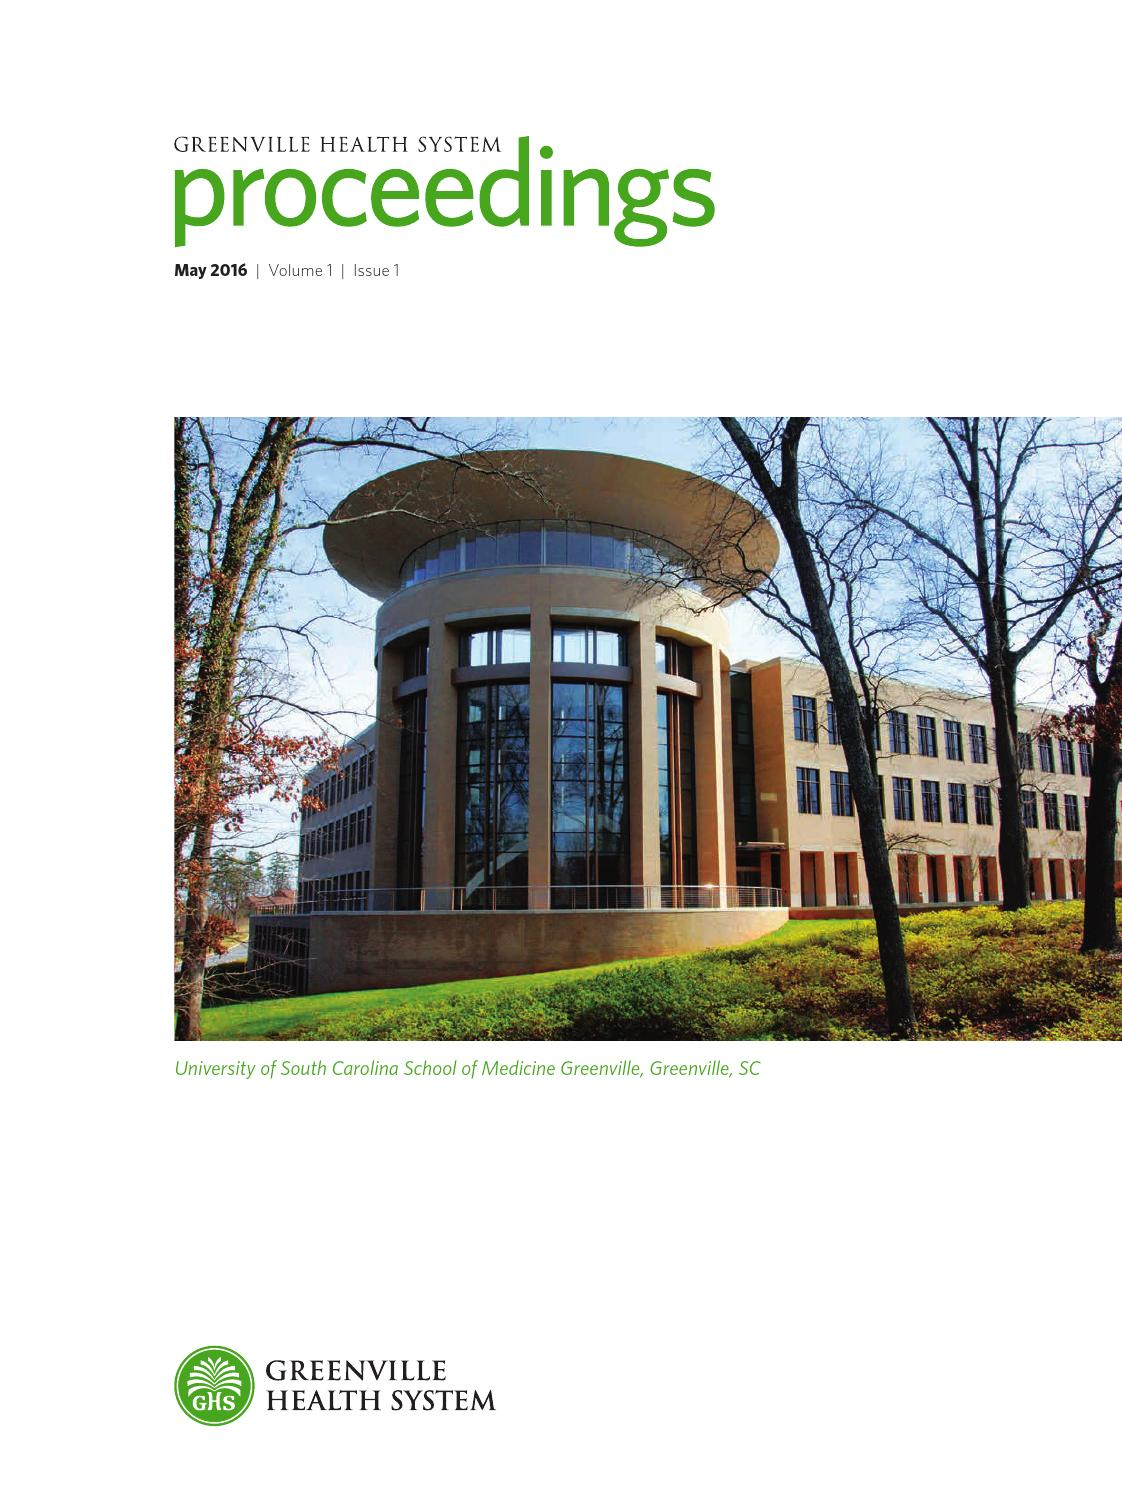 Greenville Health System Preceedings vol 1  issue 1 by